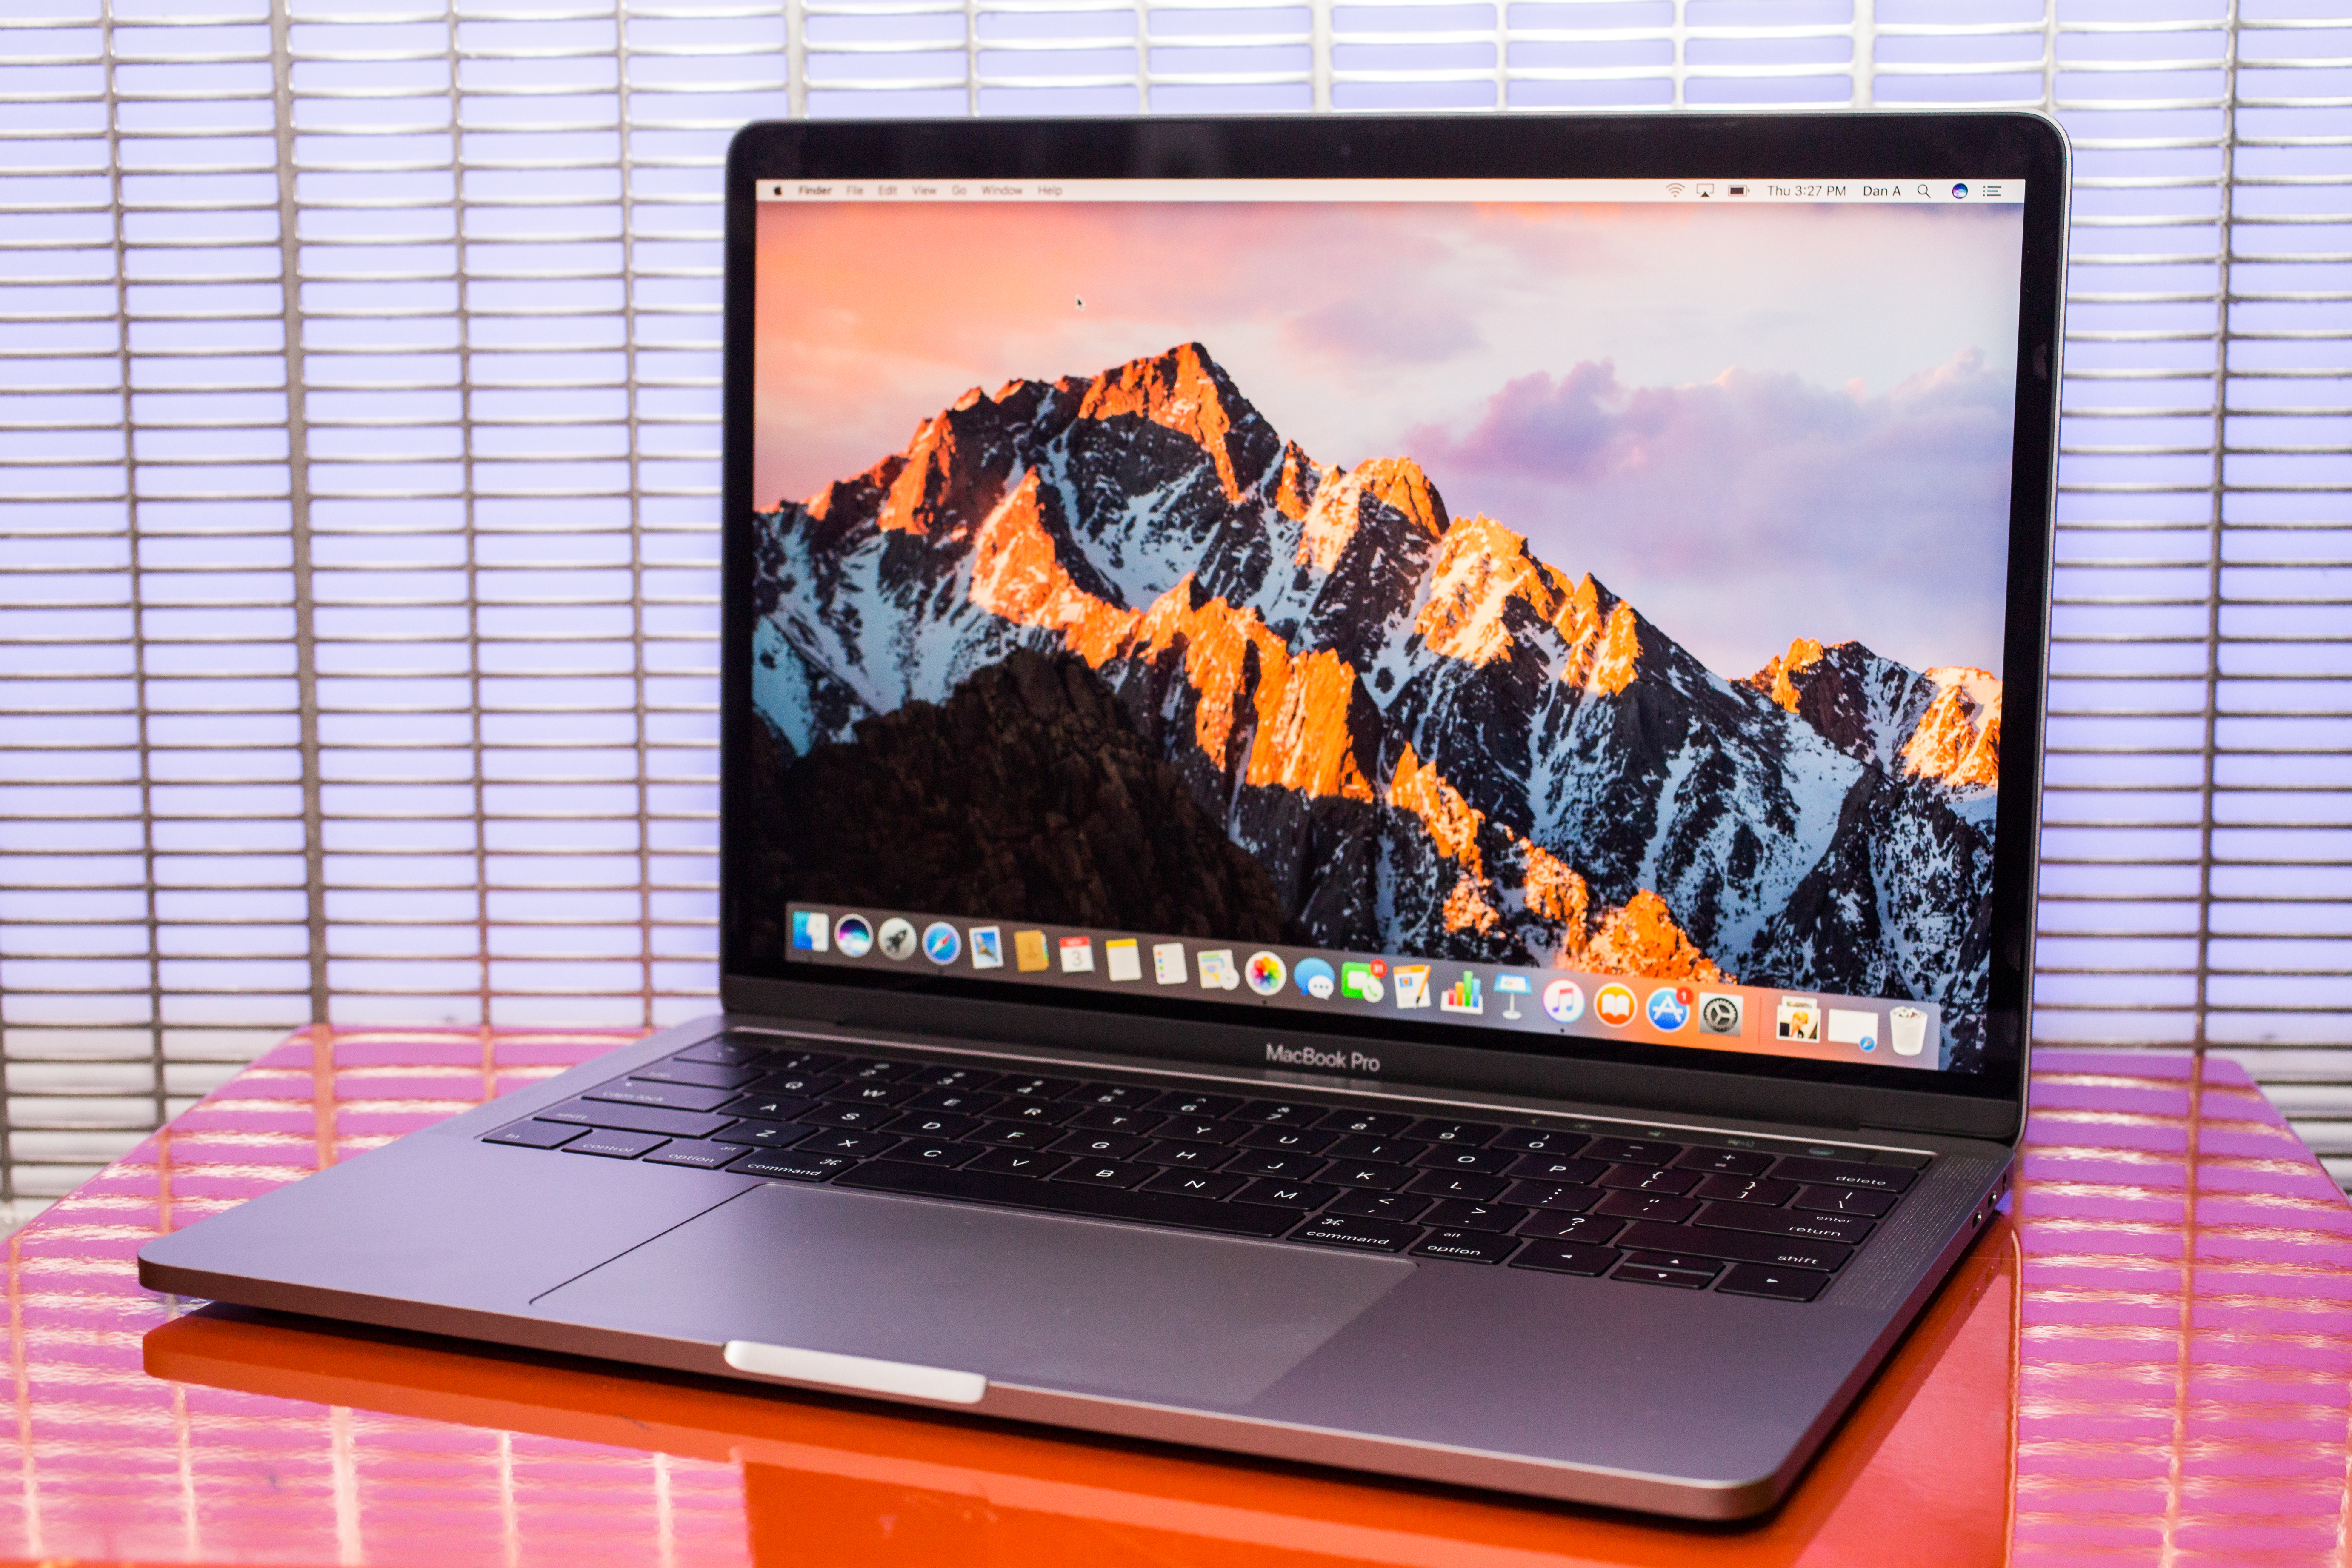 apple-macbook-pro-with-touch-bar-13-inch-2016-36.jpg